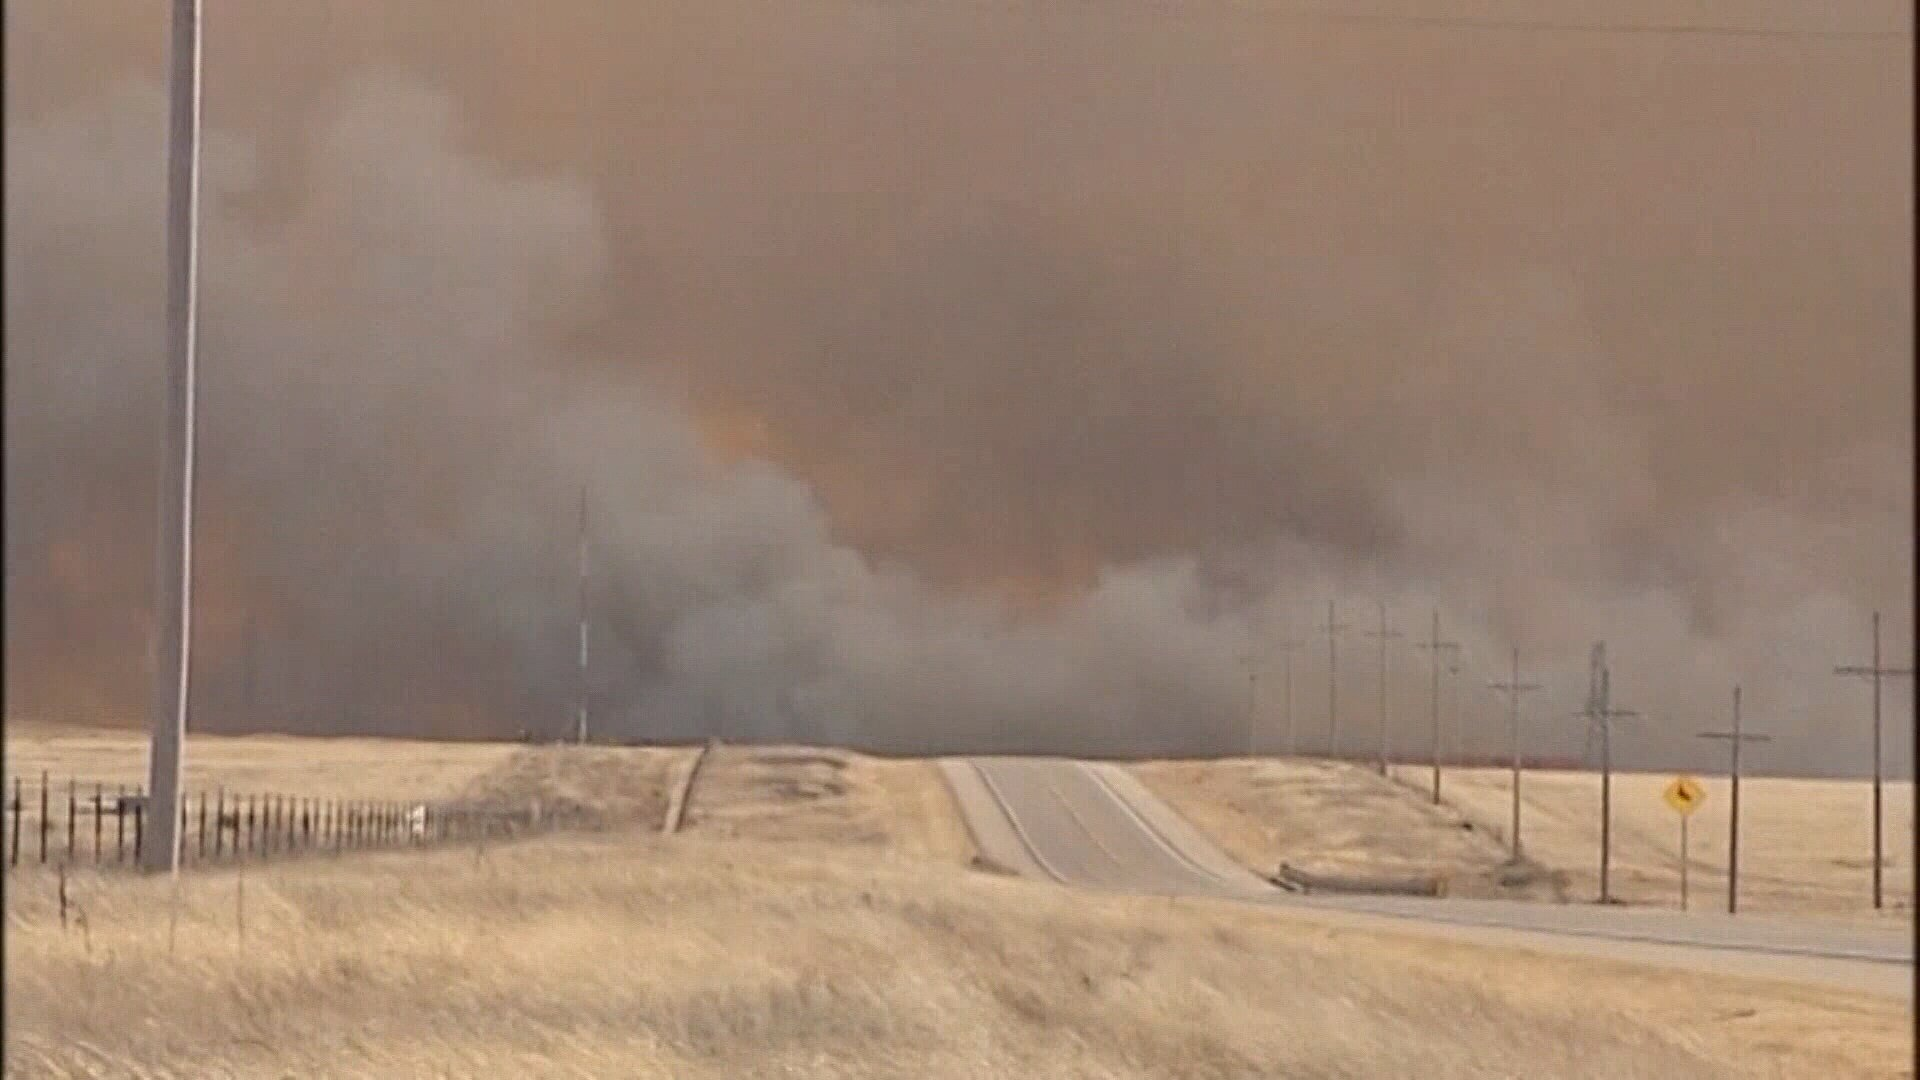 Texas A&M Forest Service dispatches crews/equipment to fight Panhandle fires